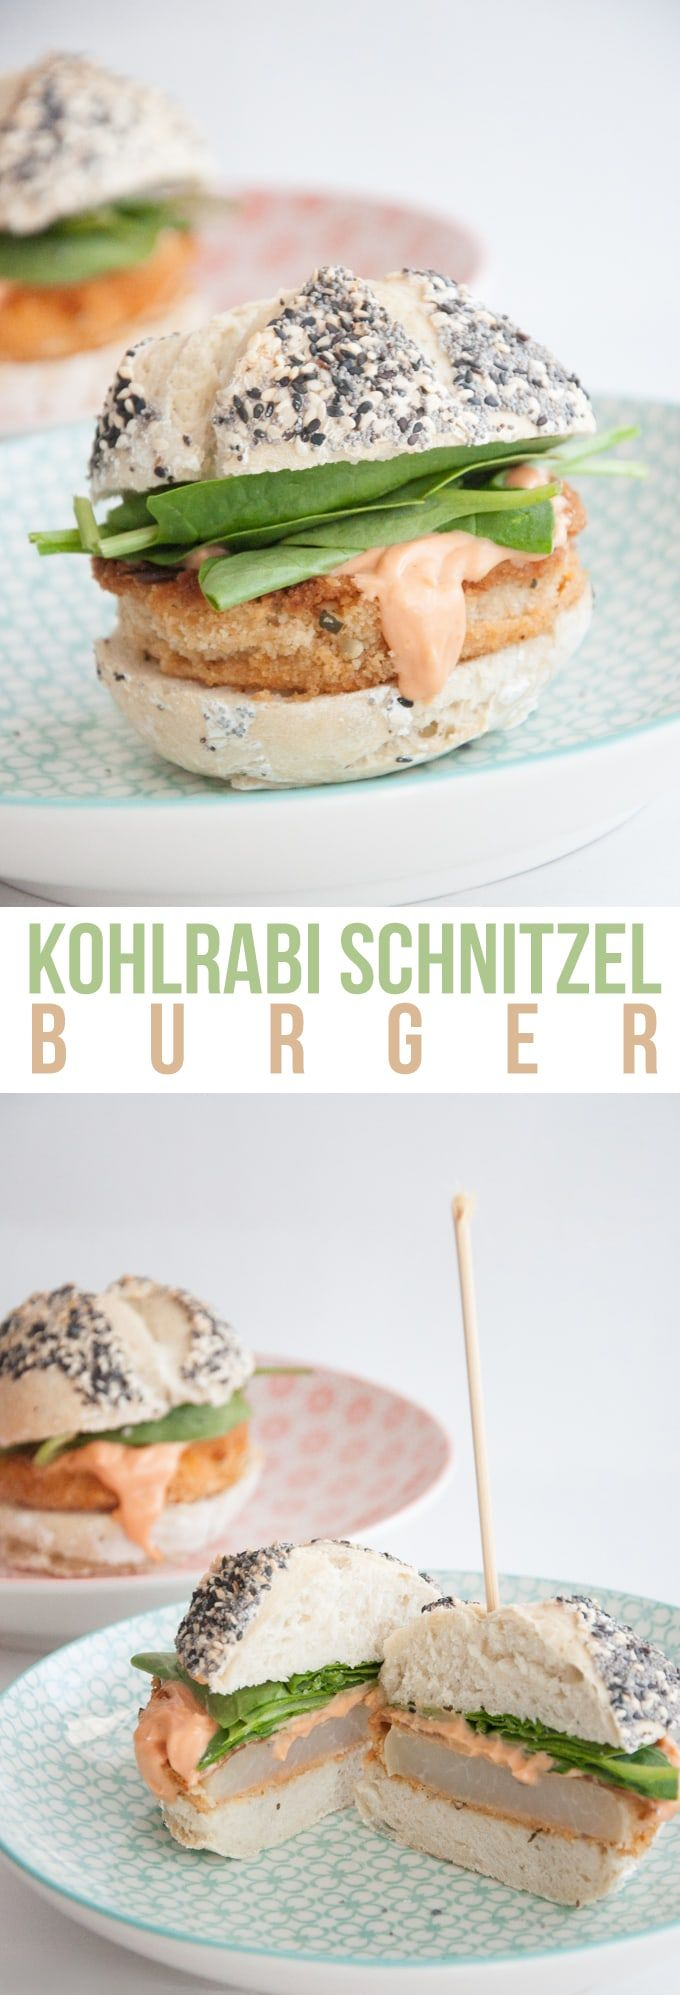 Recipe for a vegan Kohlrabi Schnitzel Burger with homemade Burger Buns, spinach and Thousand Island dressing.